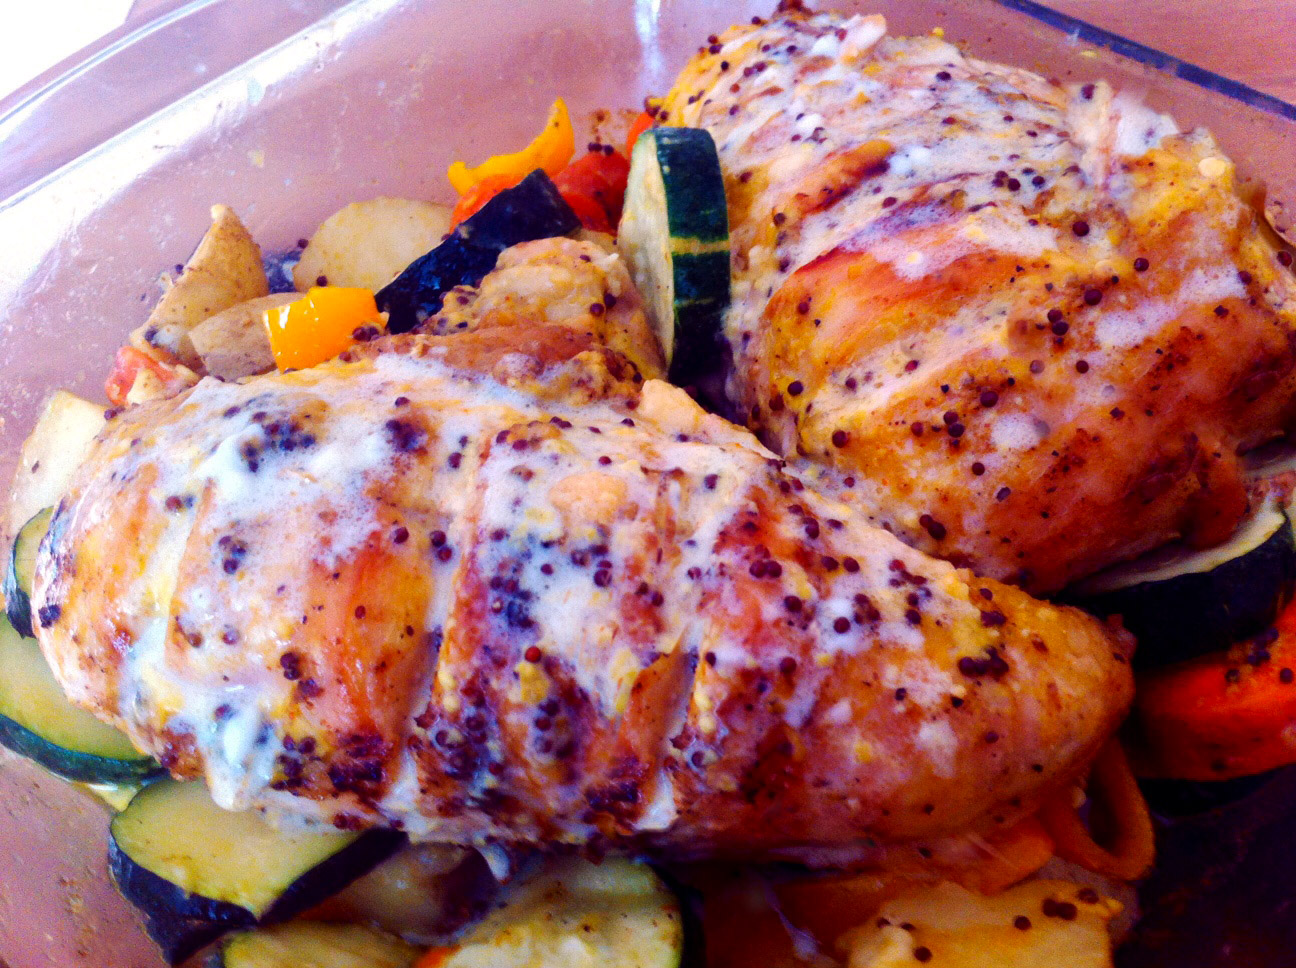 Pan seared chicken drizzled with mustard sauce and vegetables